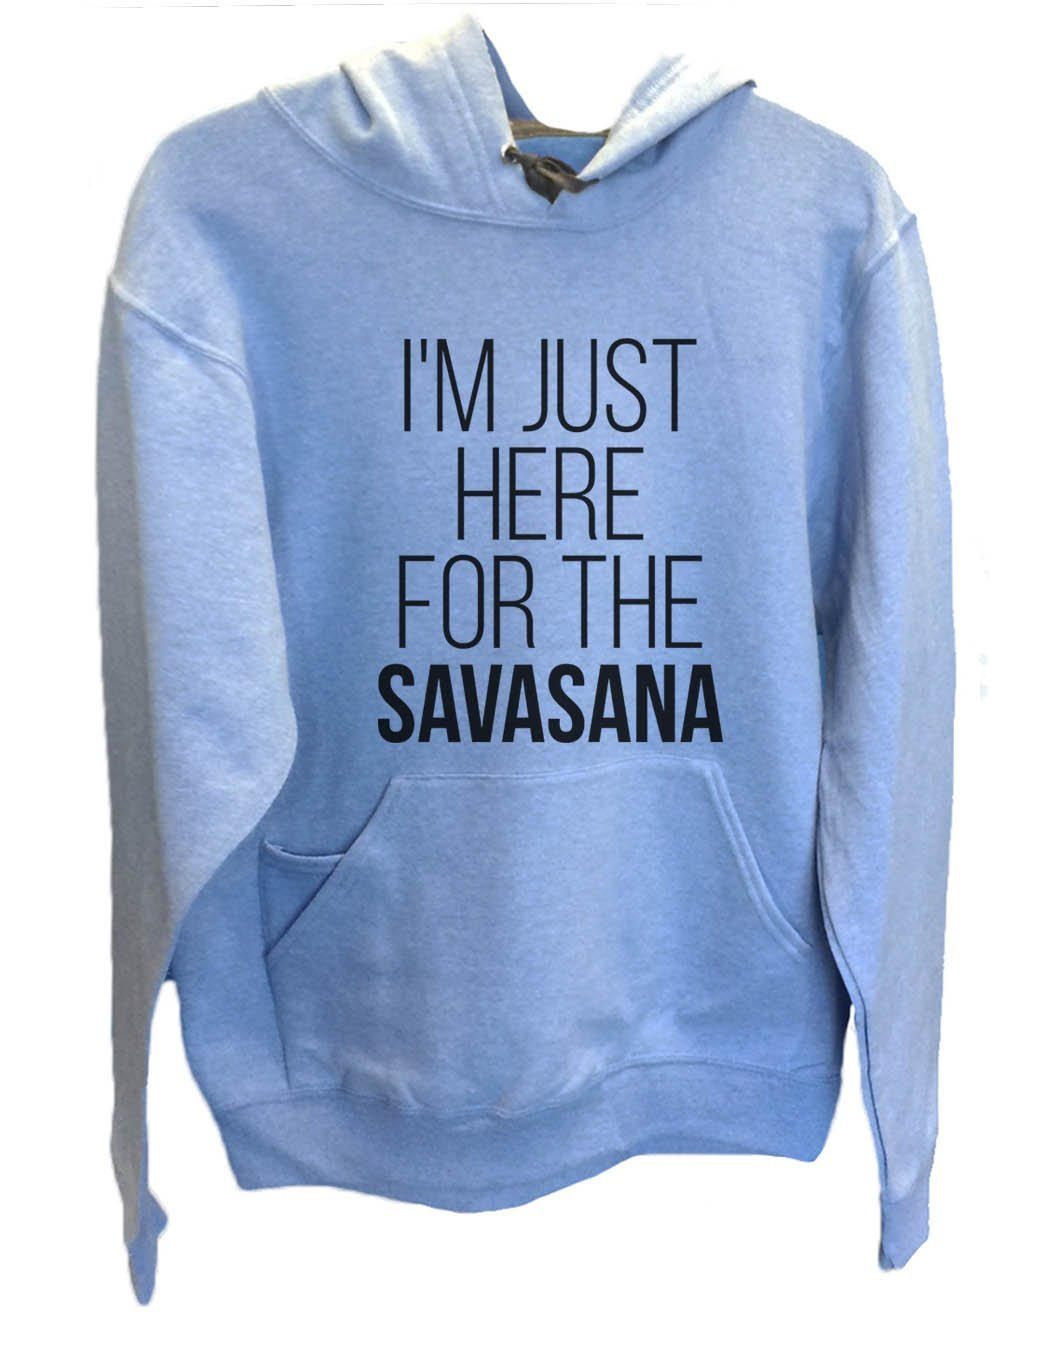 UNISEX HOODIE - I'm just here for the Savasana - FUNNY MENS AND WOMENS HOODED SWEATSHIRTS - 2119 Funny Shirt Small / North Carolina Blue